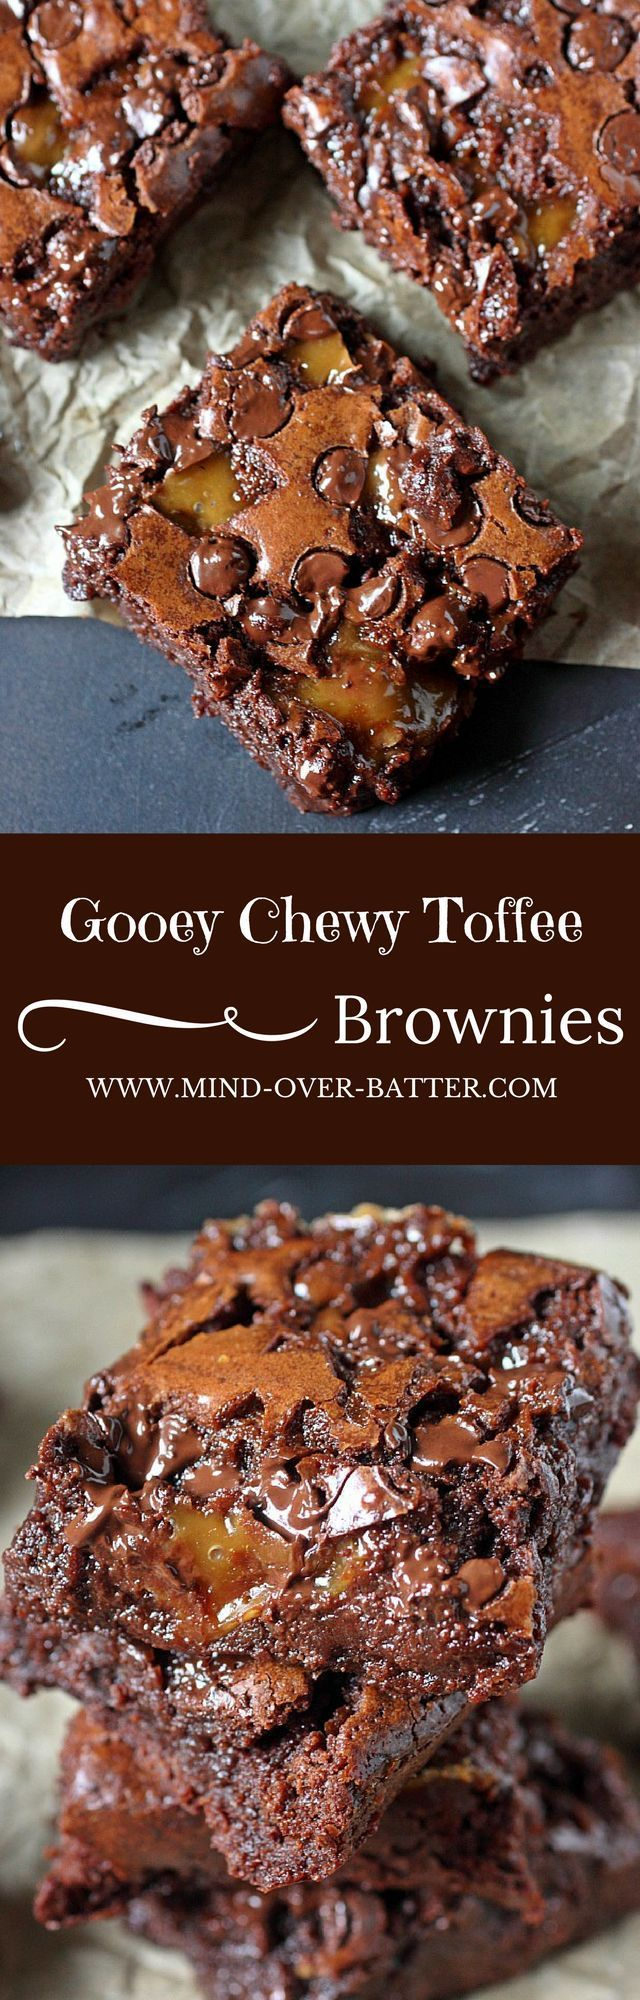 Gooey Chewy Toffee Brownies -- mind-over-batter.com #Toffee